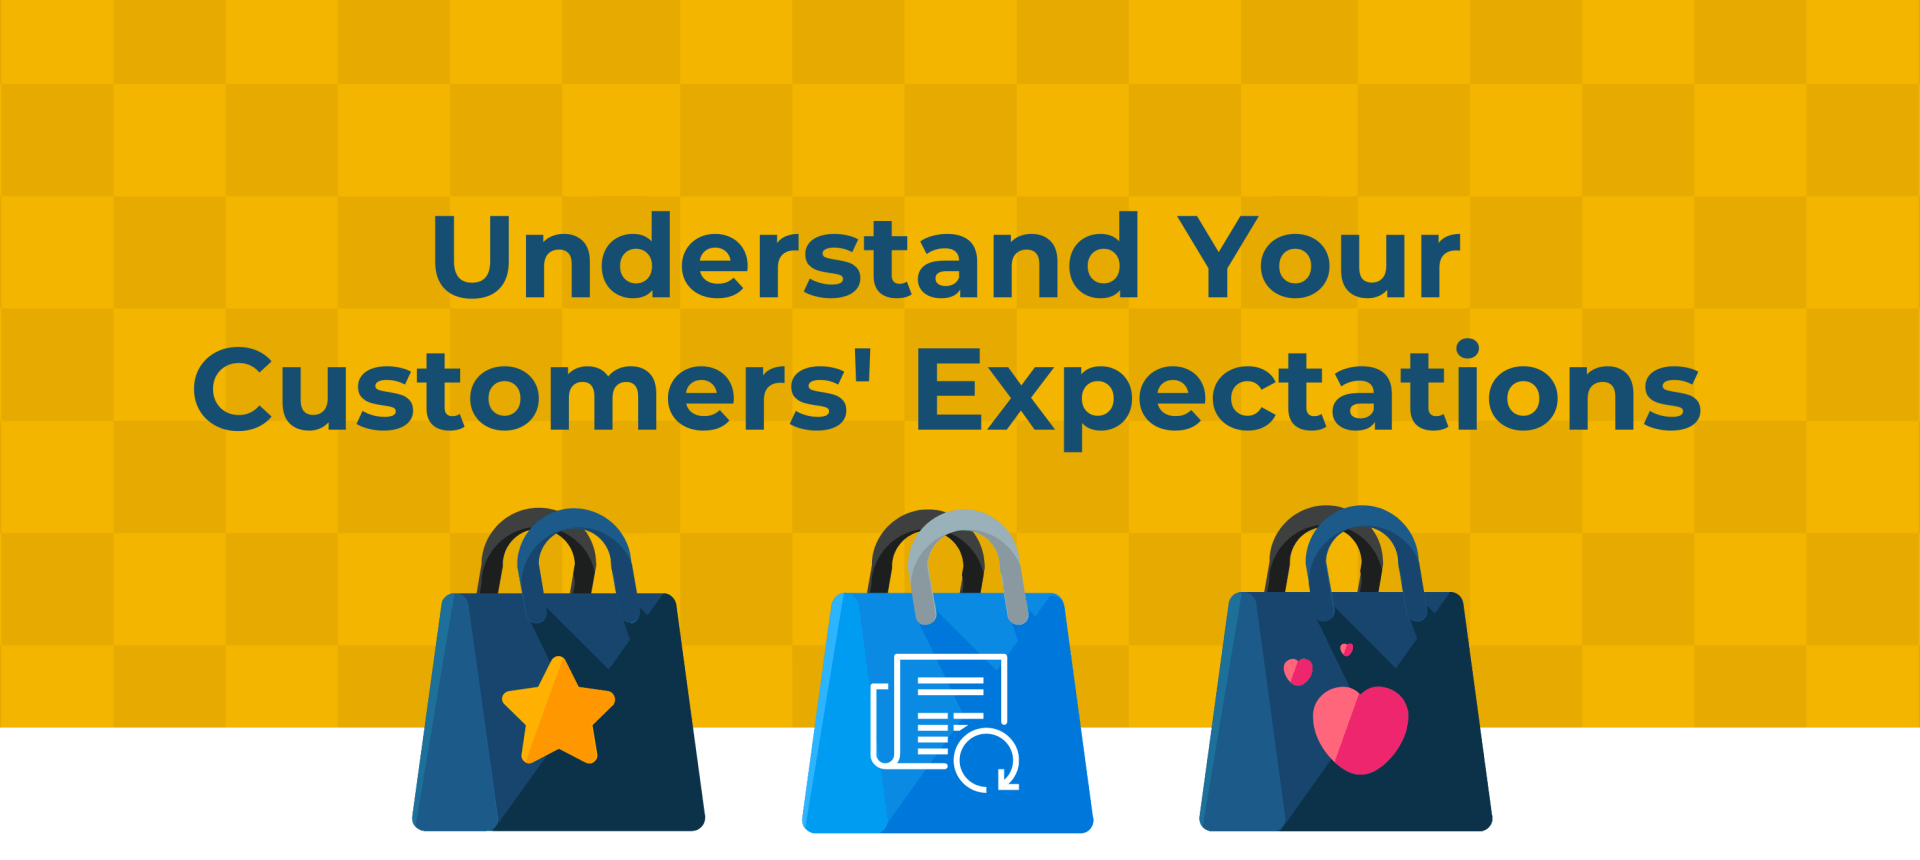 Understand Your Customers' Expectations